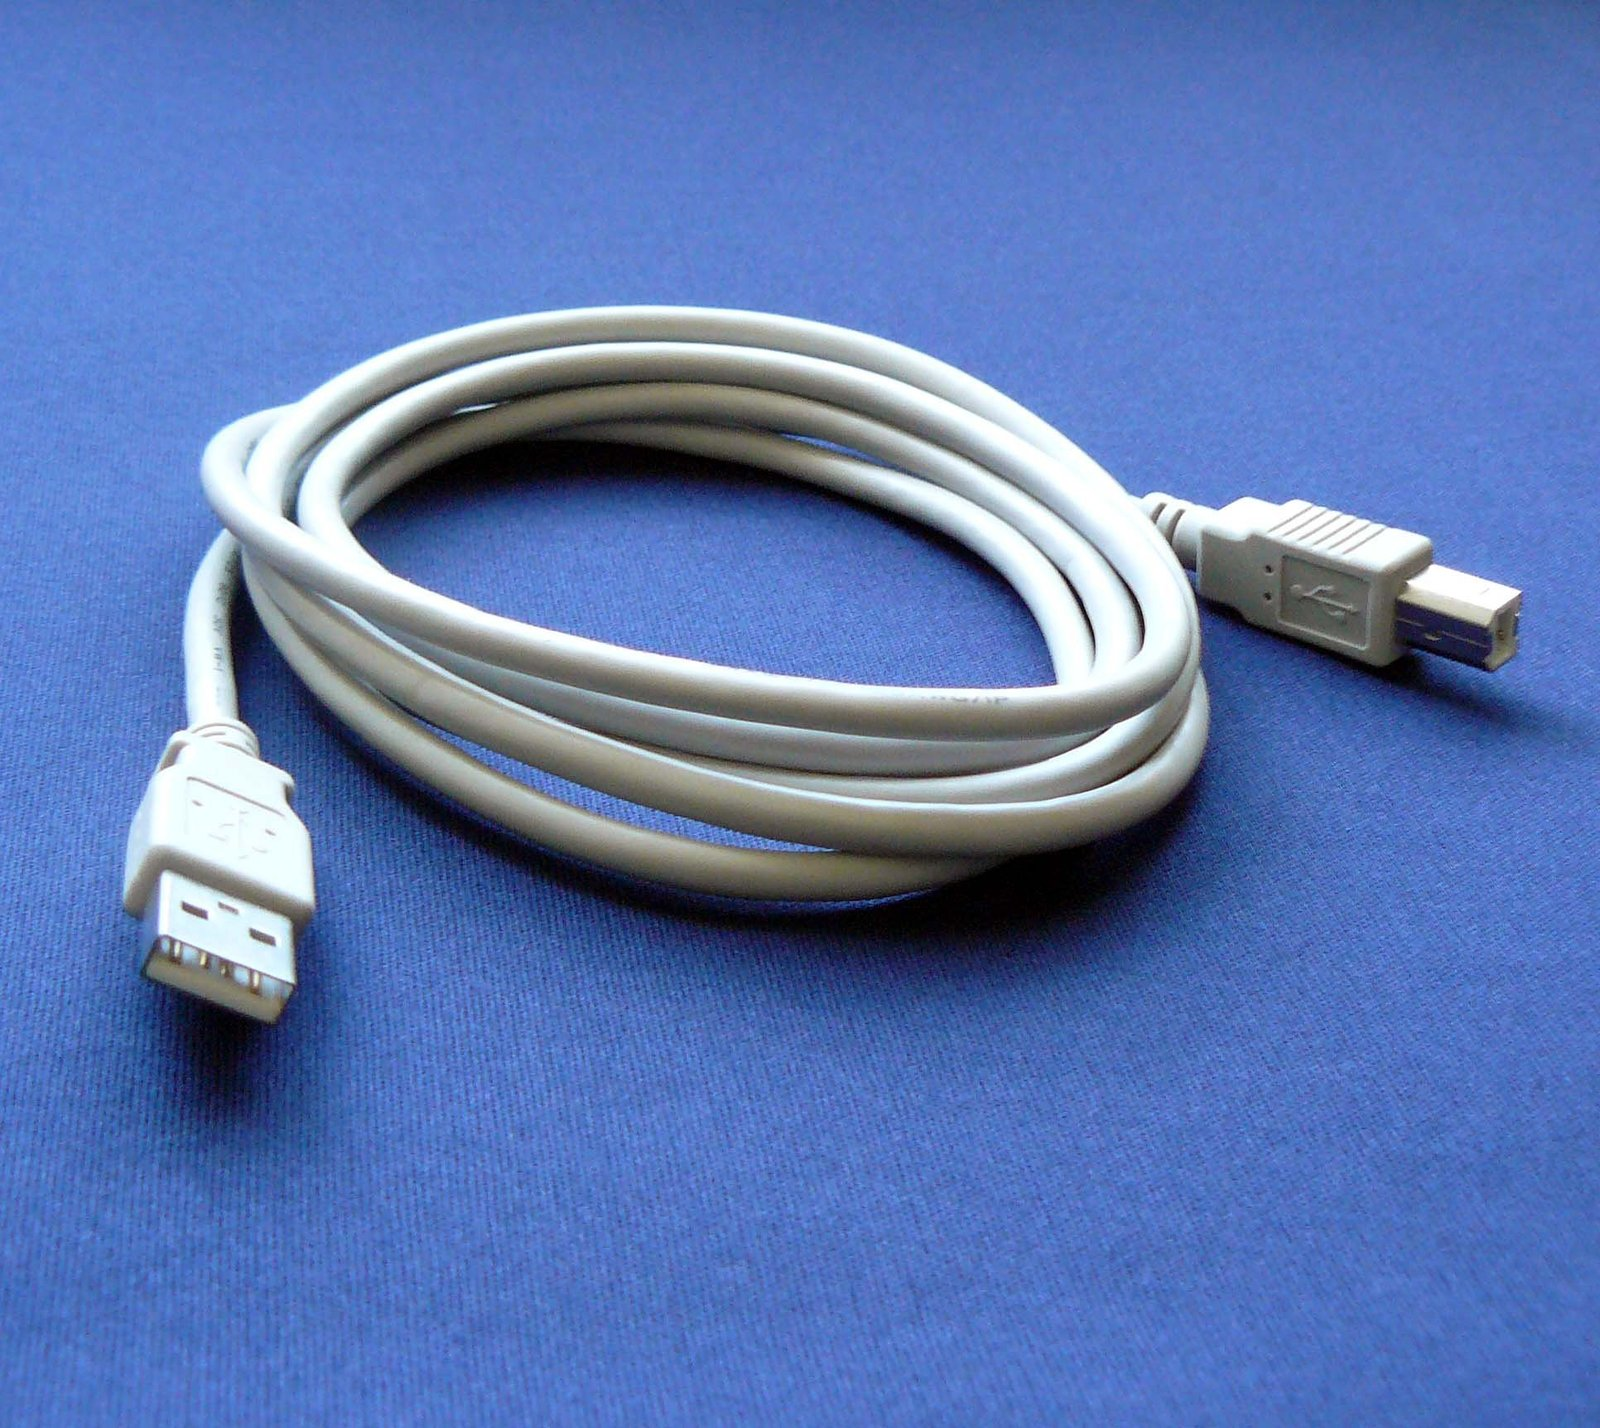 Primary image for Canon Pixma MP600 Printer Compatible USB 2.0 Cable Cord for PC, Notebook, Mac...